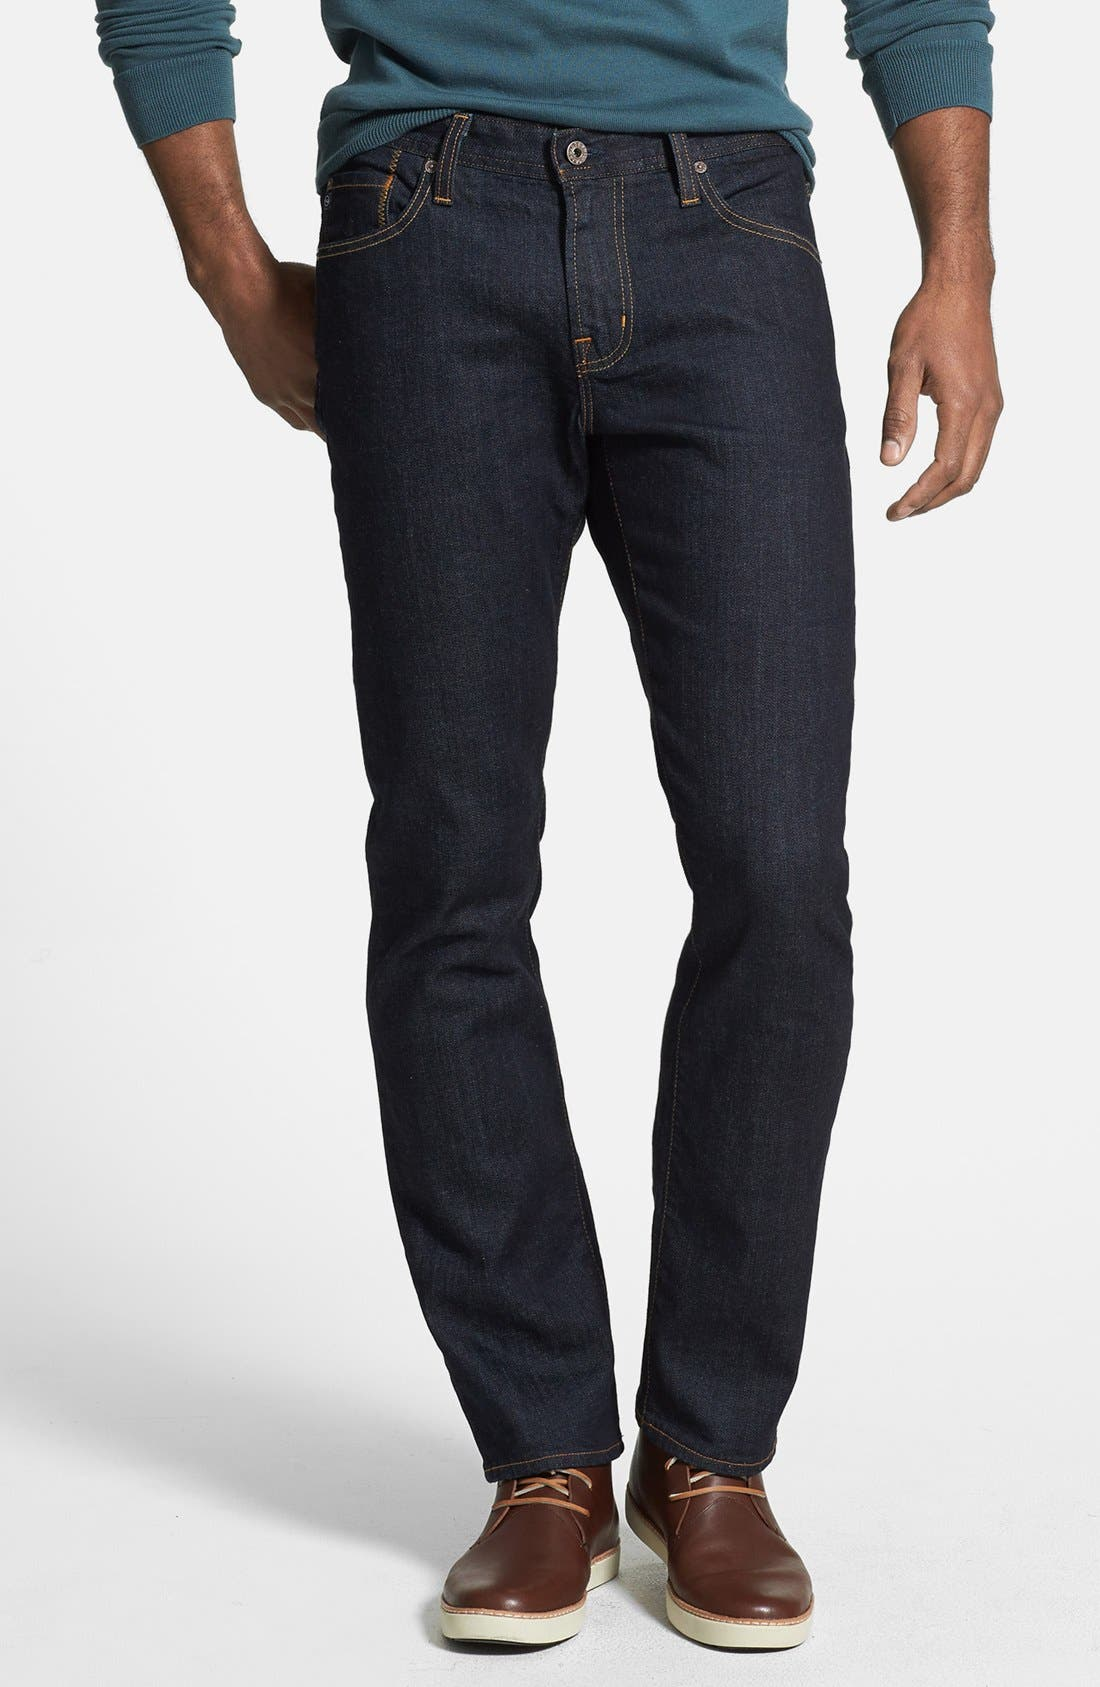 AG 'Graduate' Slim Straight Leg Jeans (Jack) (Regular & Tall)